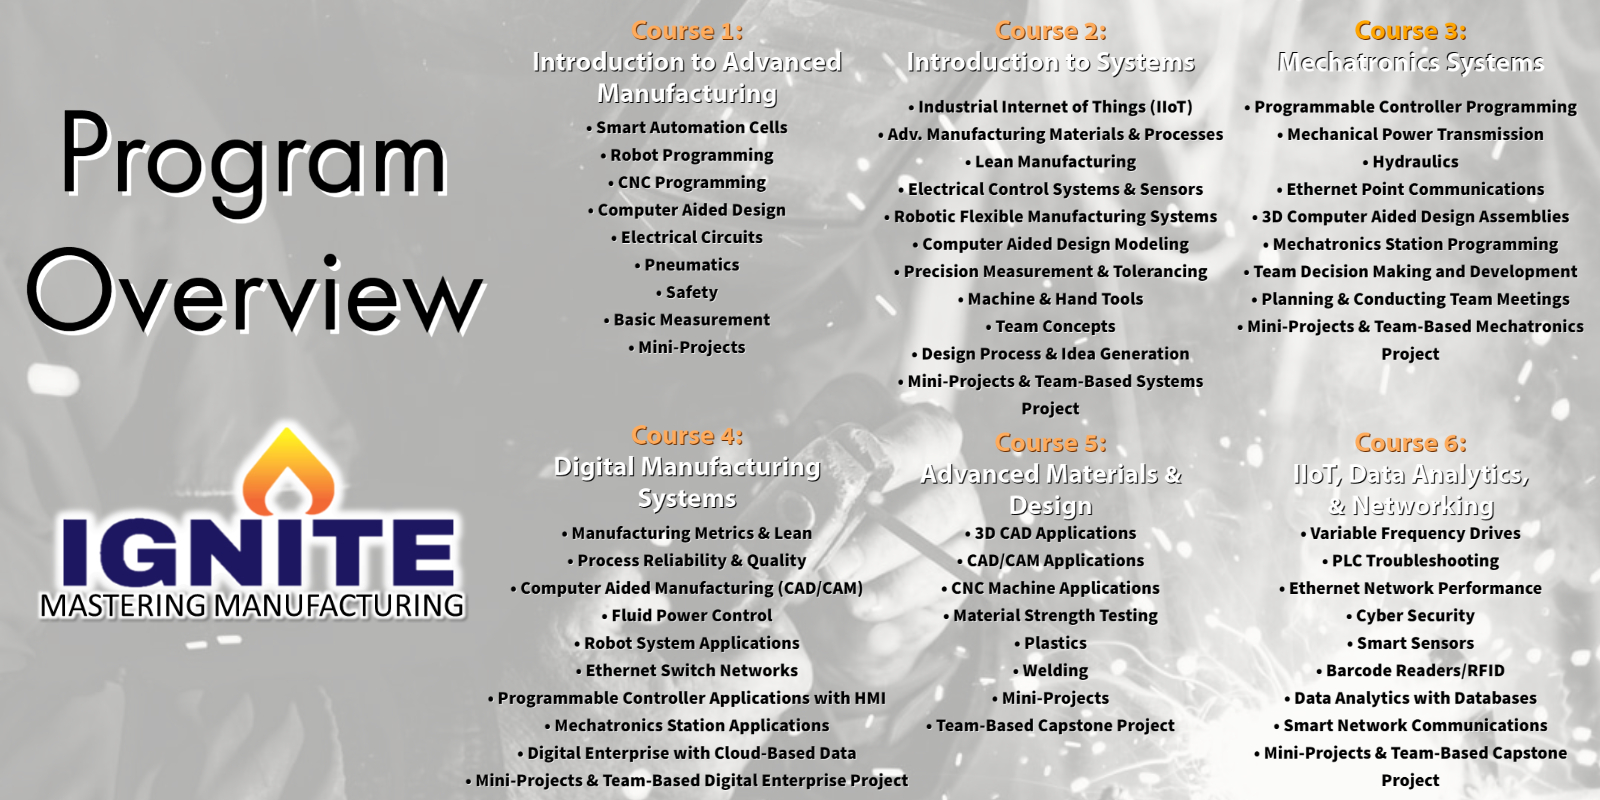 ignite: mastering manufacturing program overview